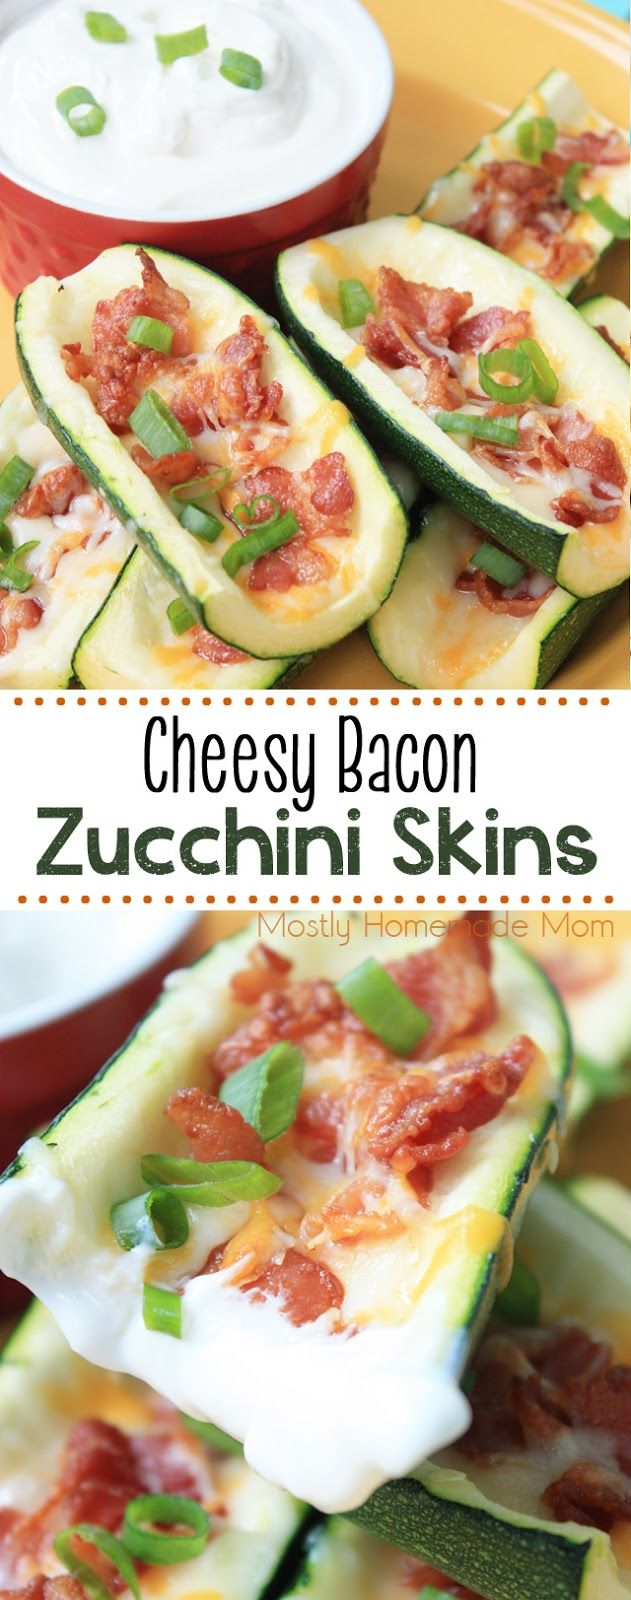 Cheesy Bacon Zucchini Skins  - Loaded with Monterey Jack cheese, bacon, green onion, and dipped in sour cream - these are the low carb version of potato skins you've been looking for! SmithfieldFlavor AD